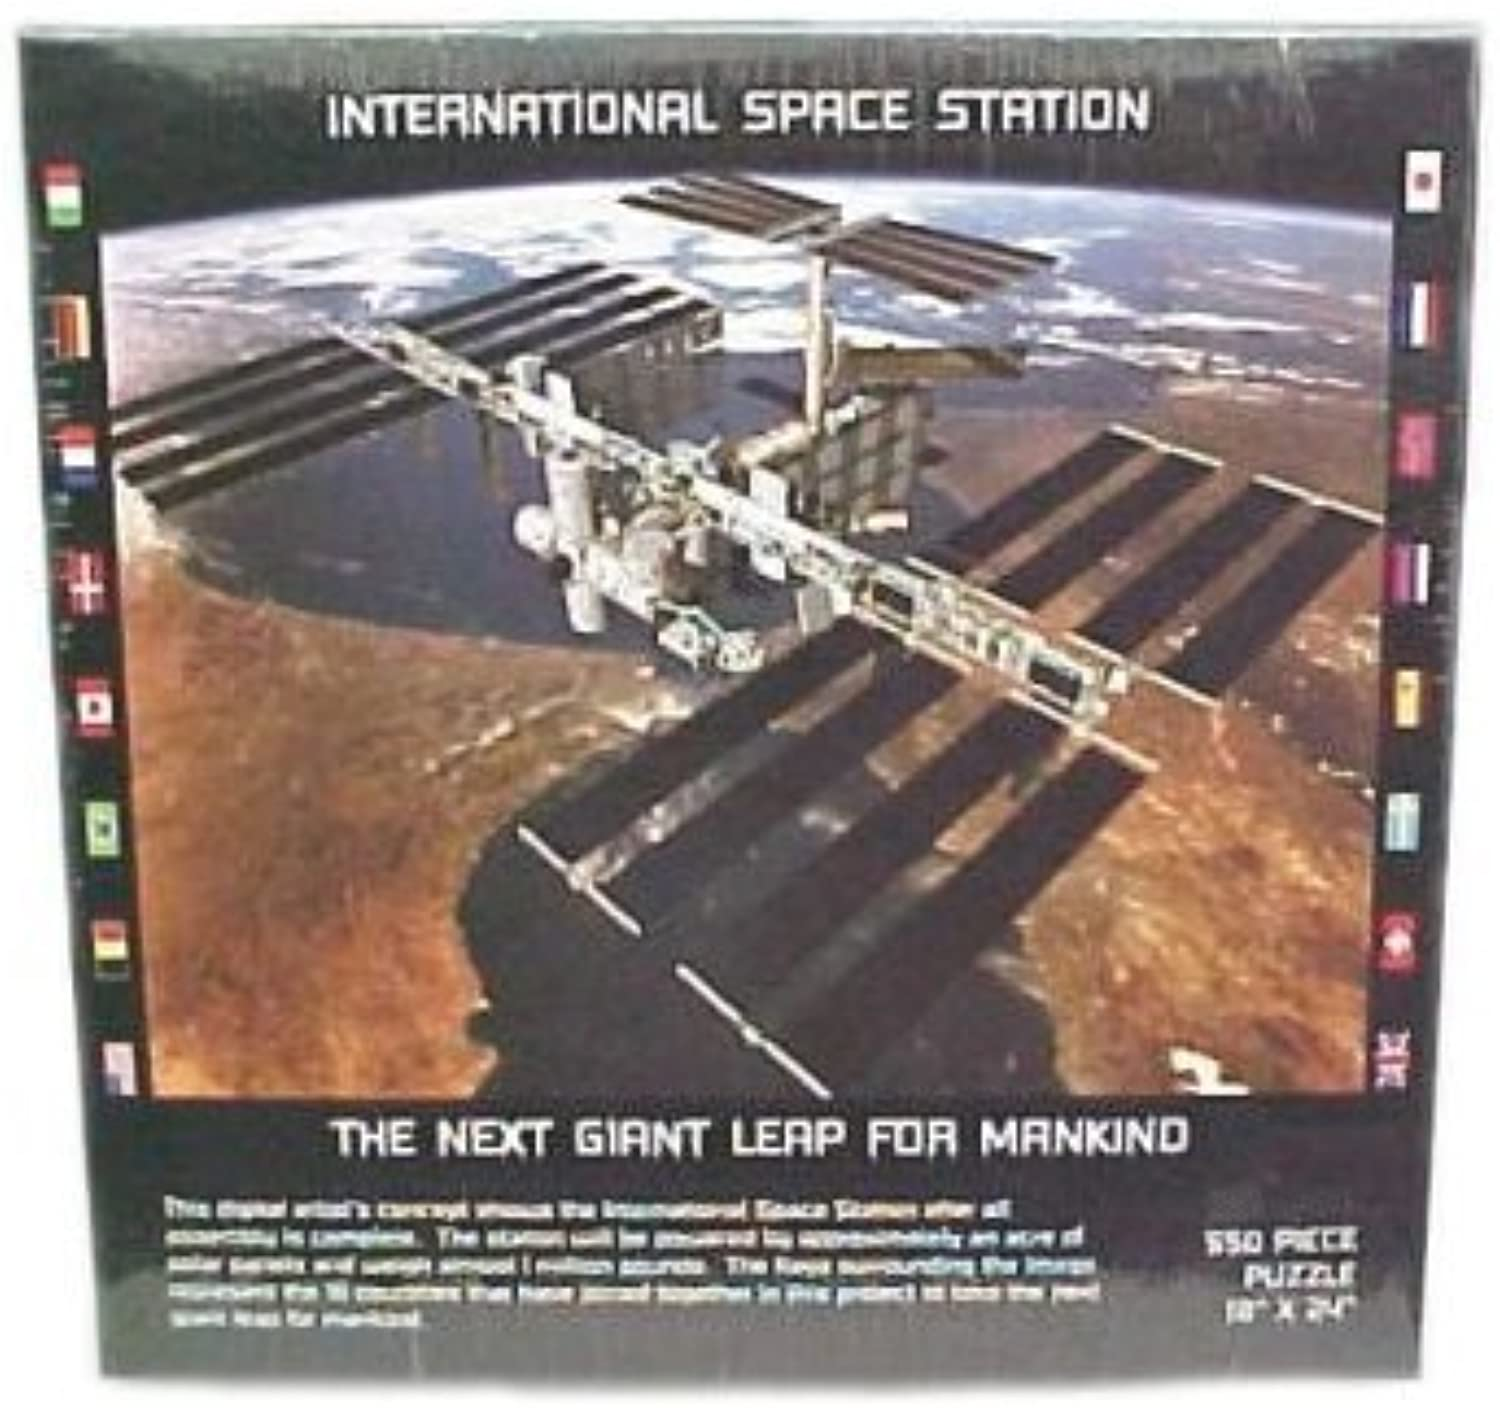 International Space Station Puzzle by RJZ Images by RJZ Images